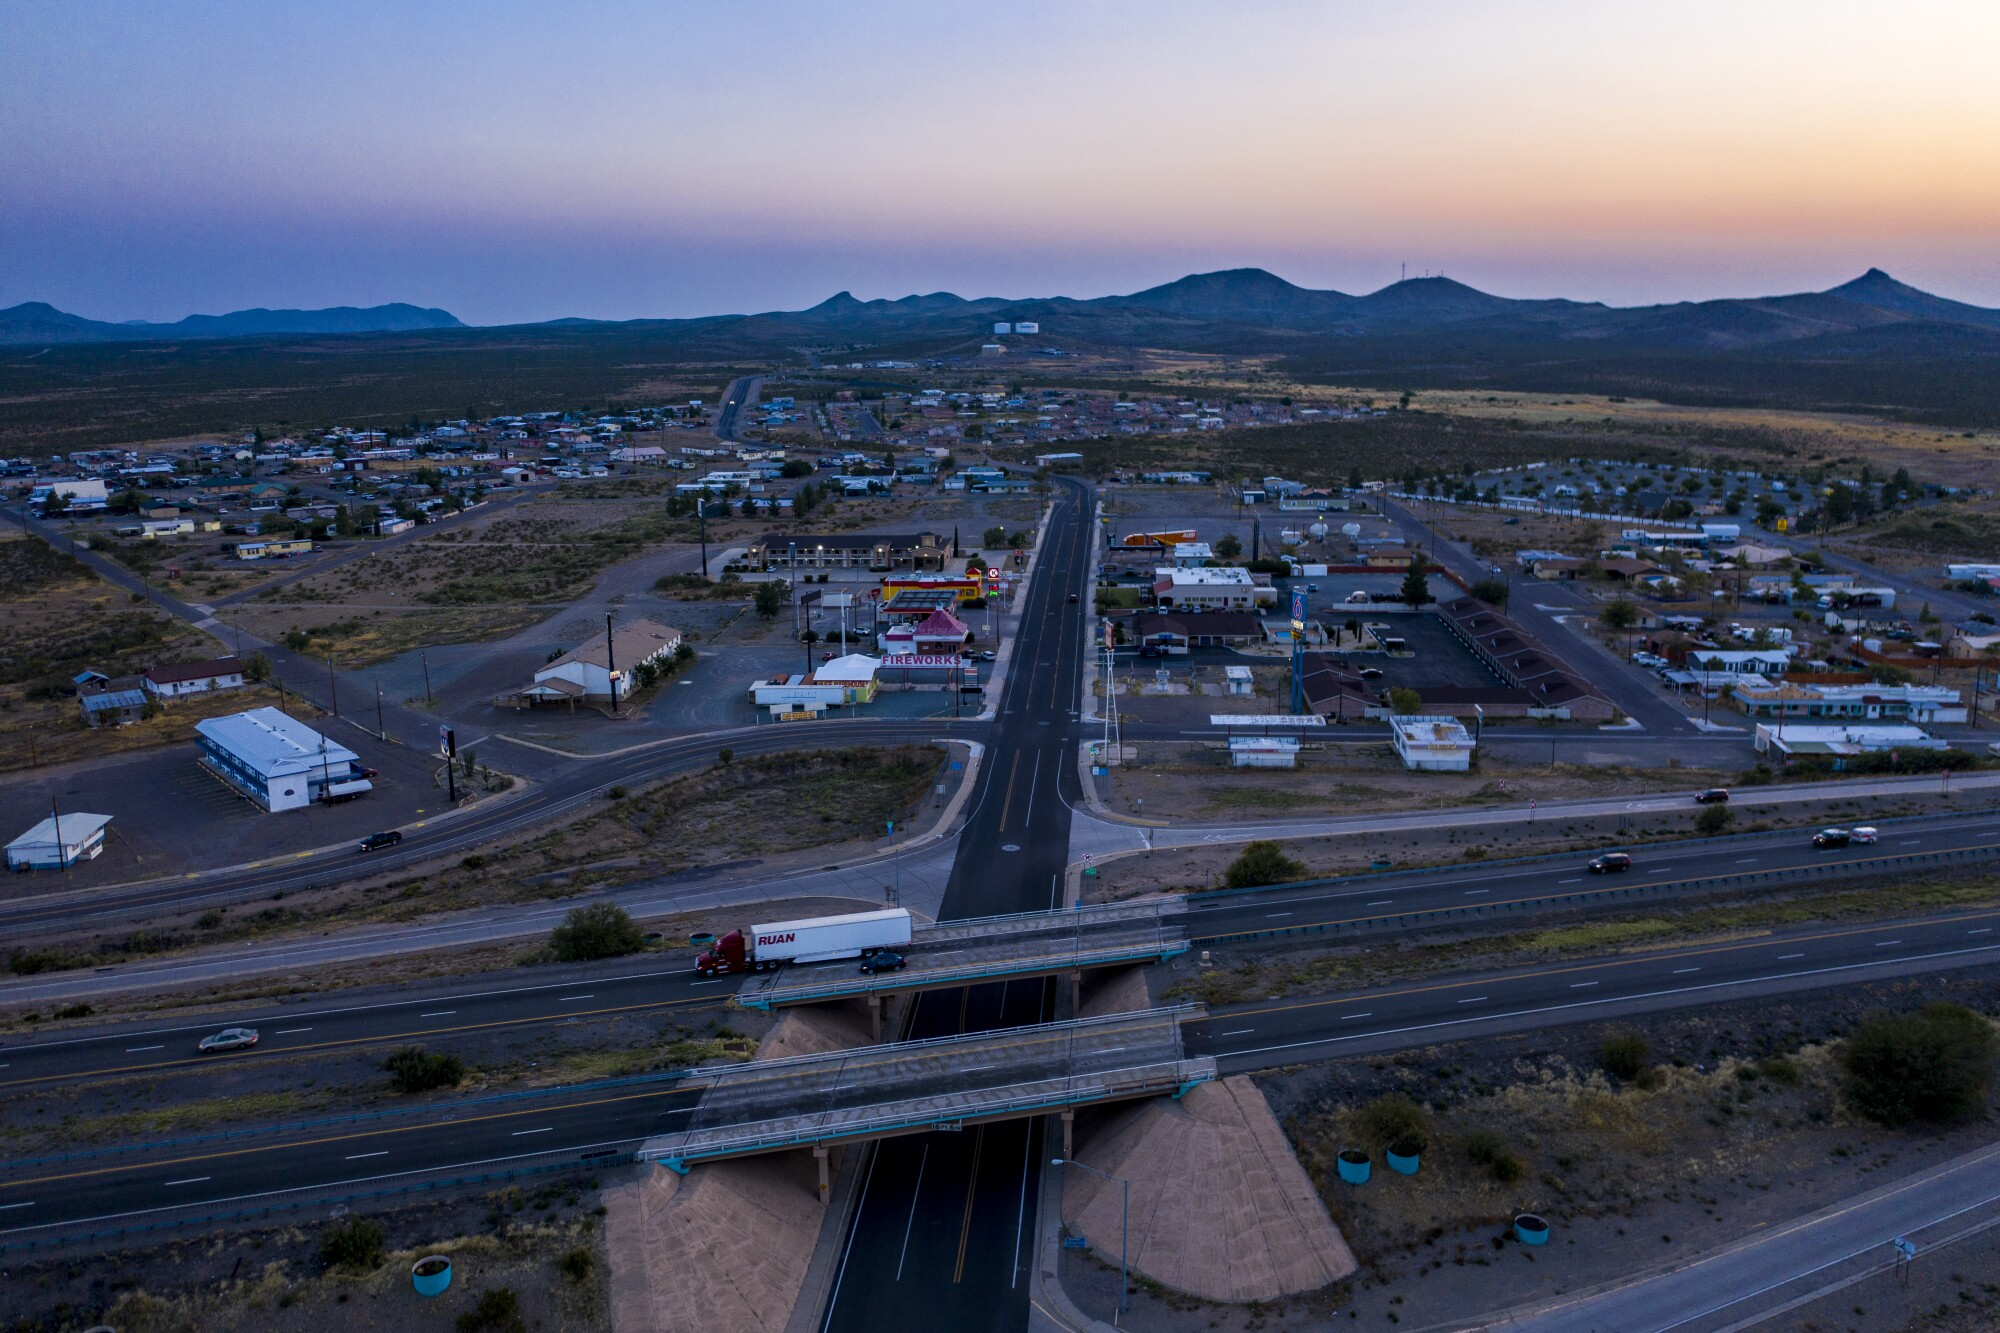 A truck rolls past the Main St. exit on Interstate 10, dividing the rural town of Lordsburg, NM.